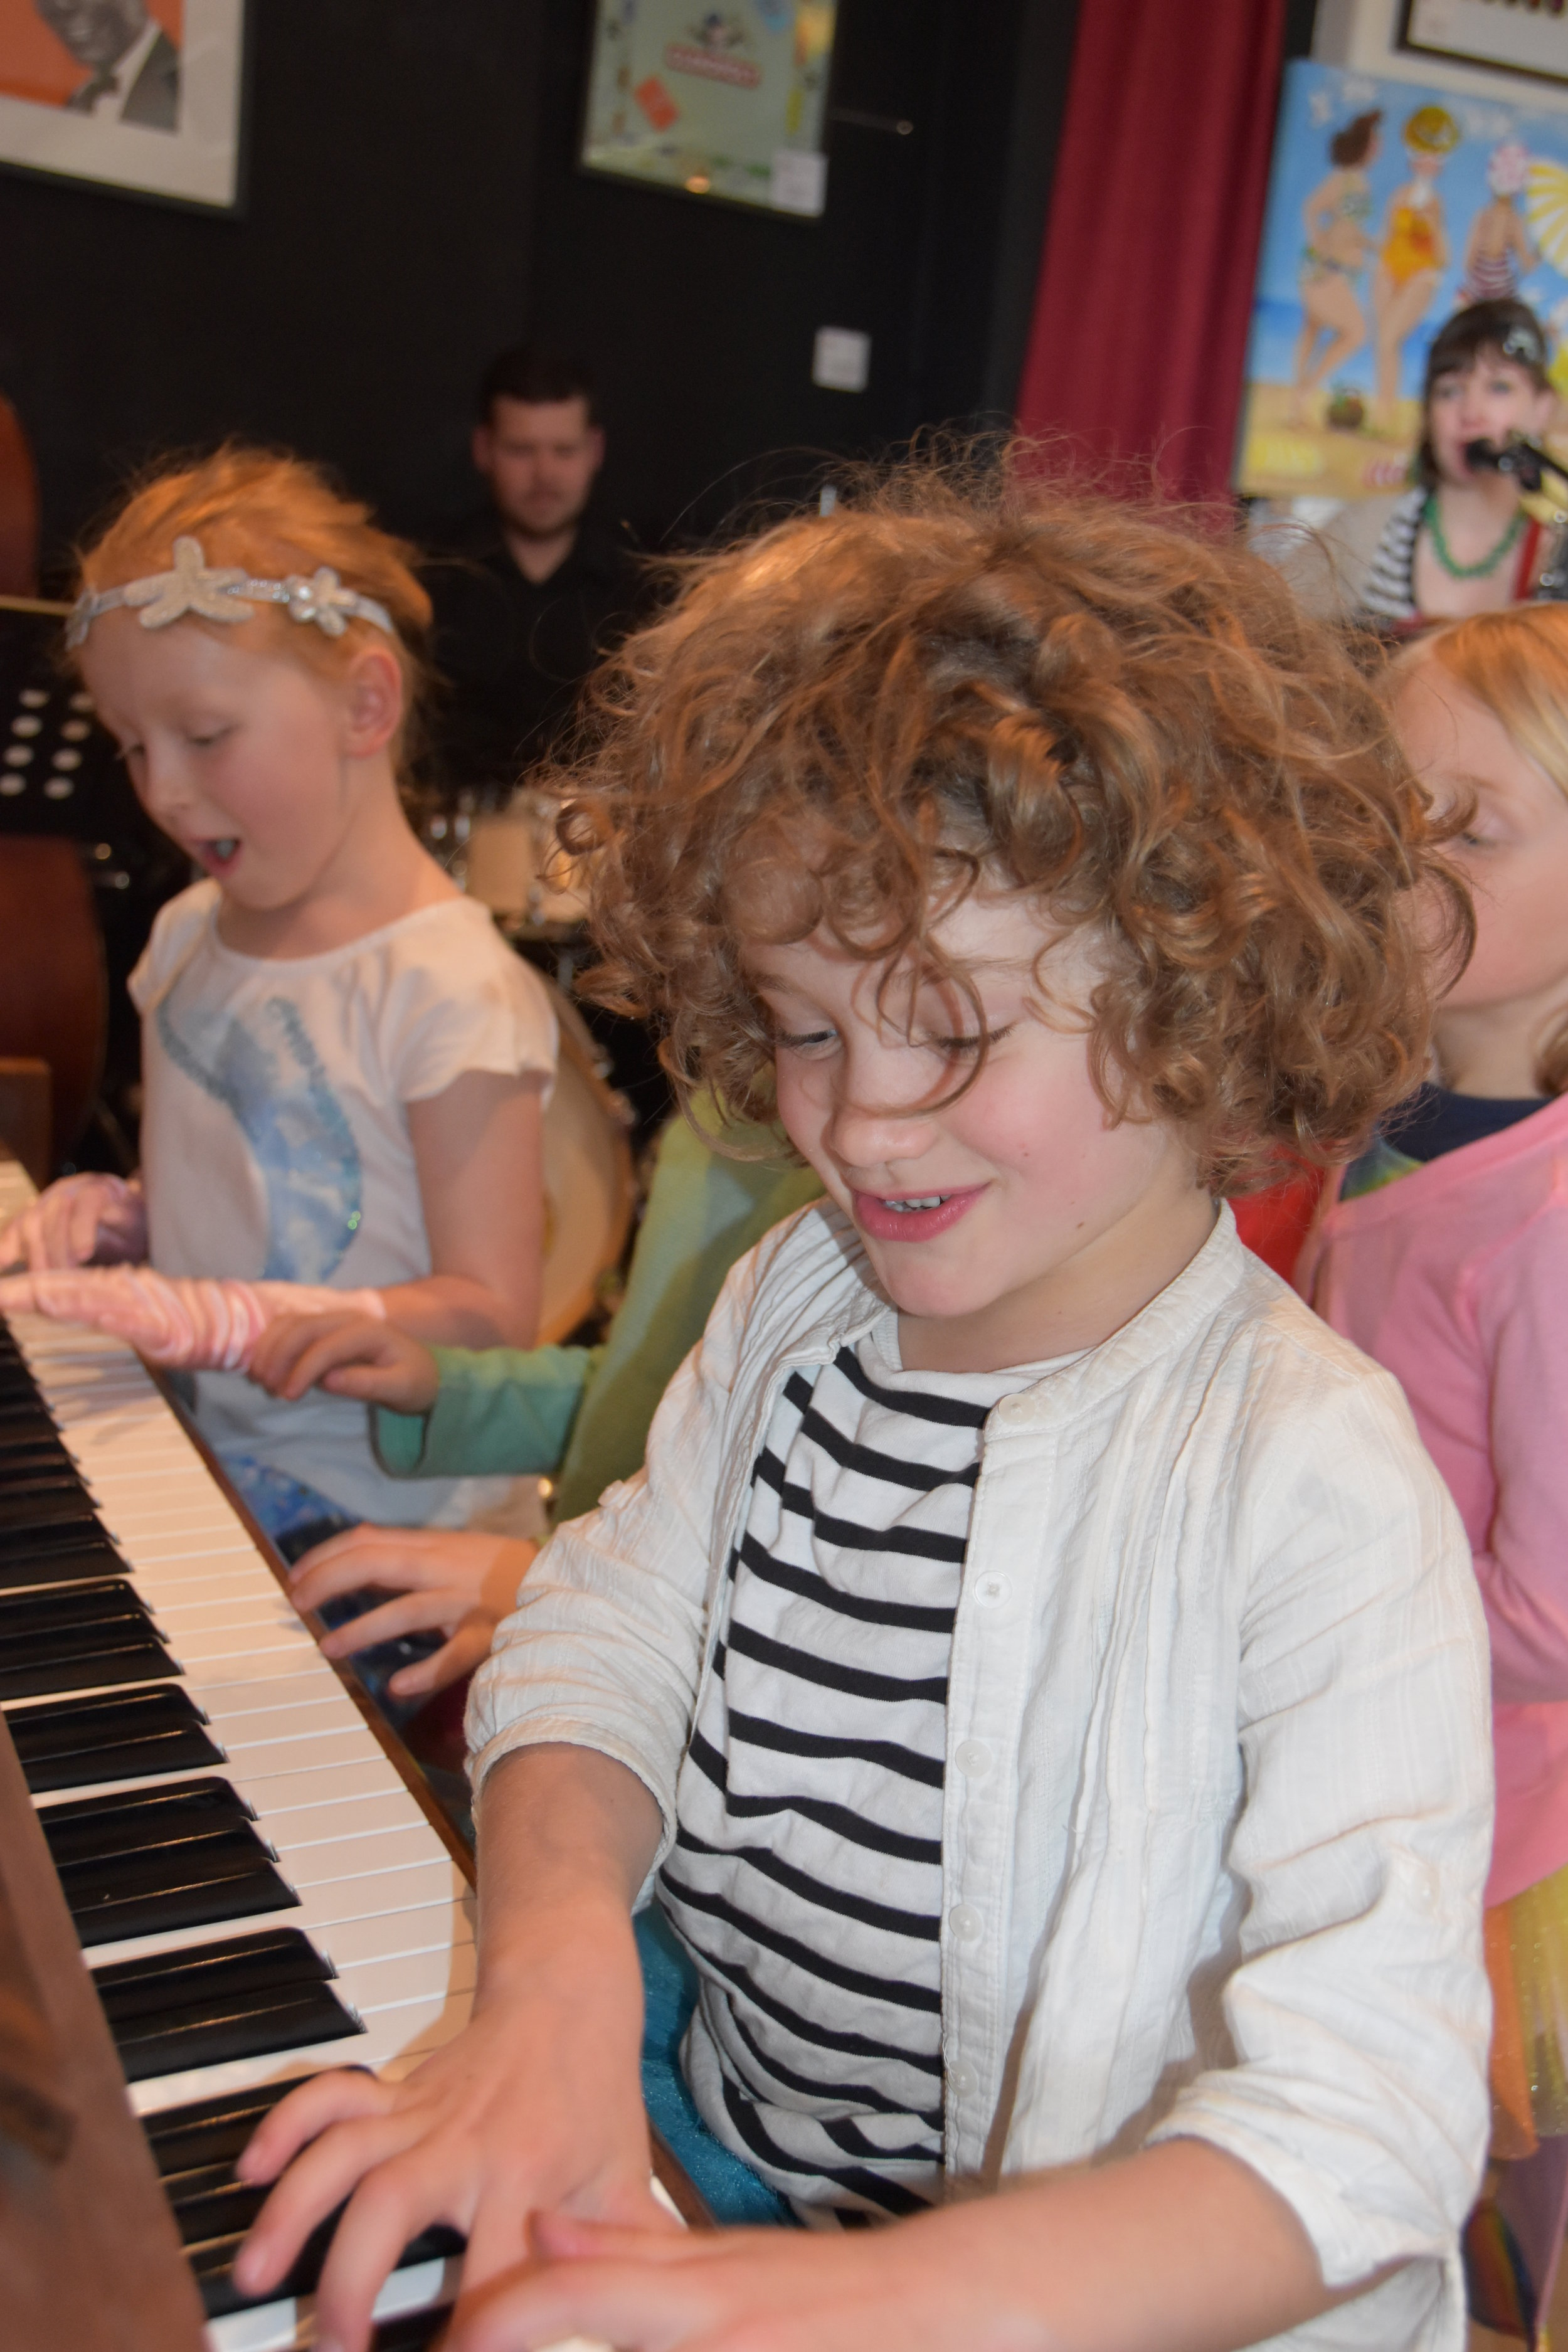 Kids on keys jam with Band @ Boomers - pic2.JPG